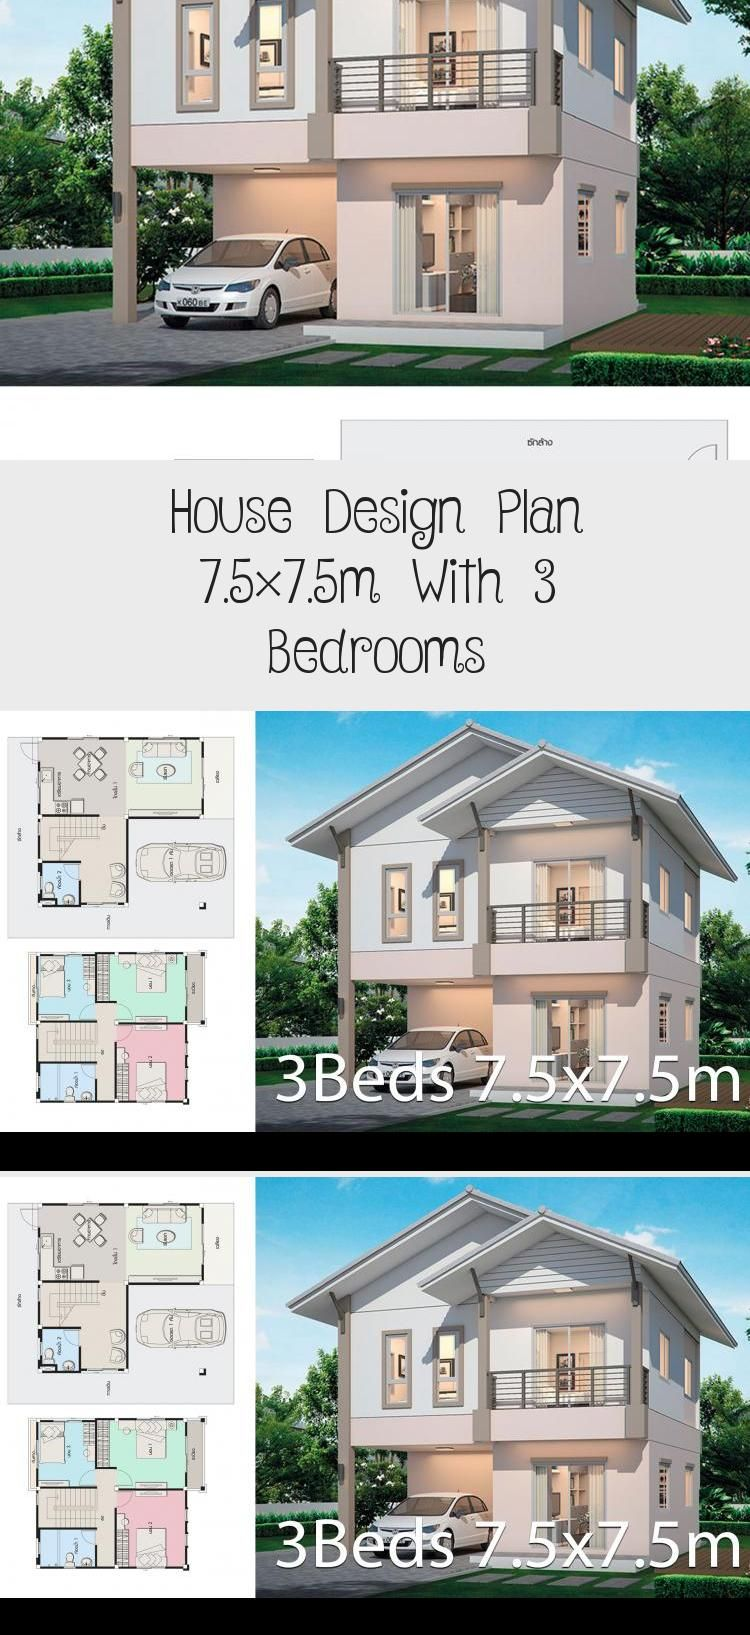 House Design Plan 7 5x7 5m With 3 Bedrooms